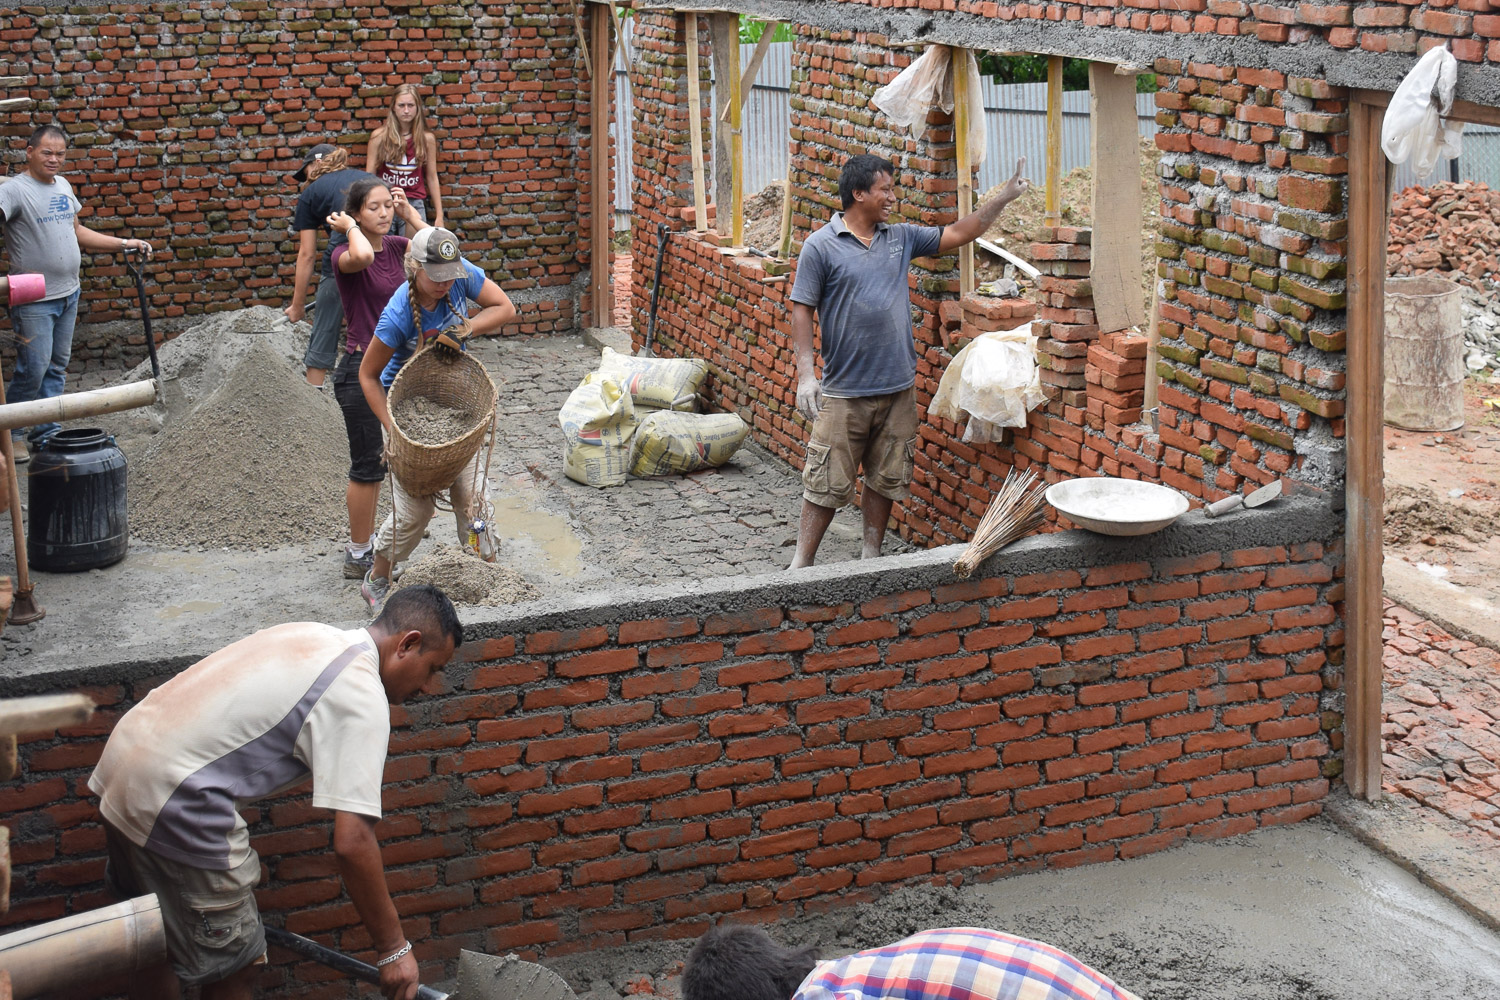 Volunteer students are helping to build a home for girls, working together with the local community.